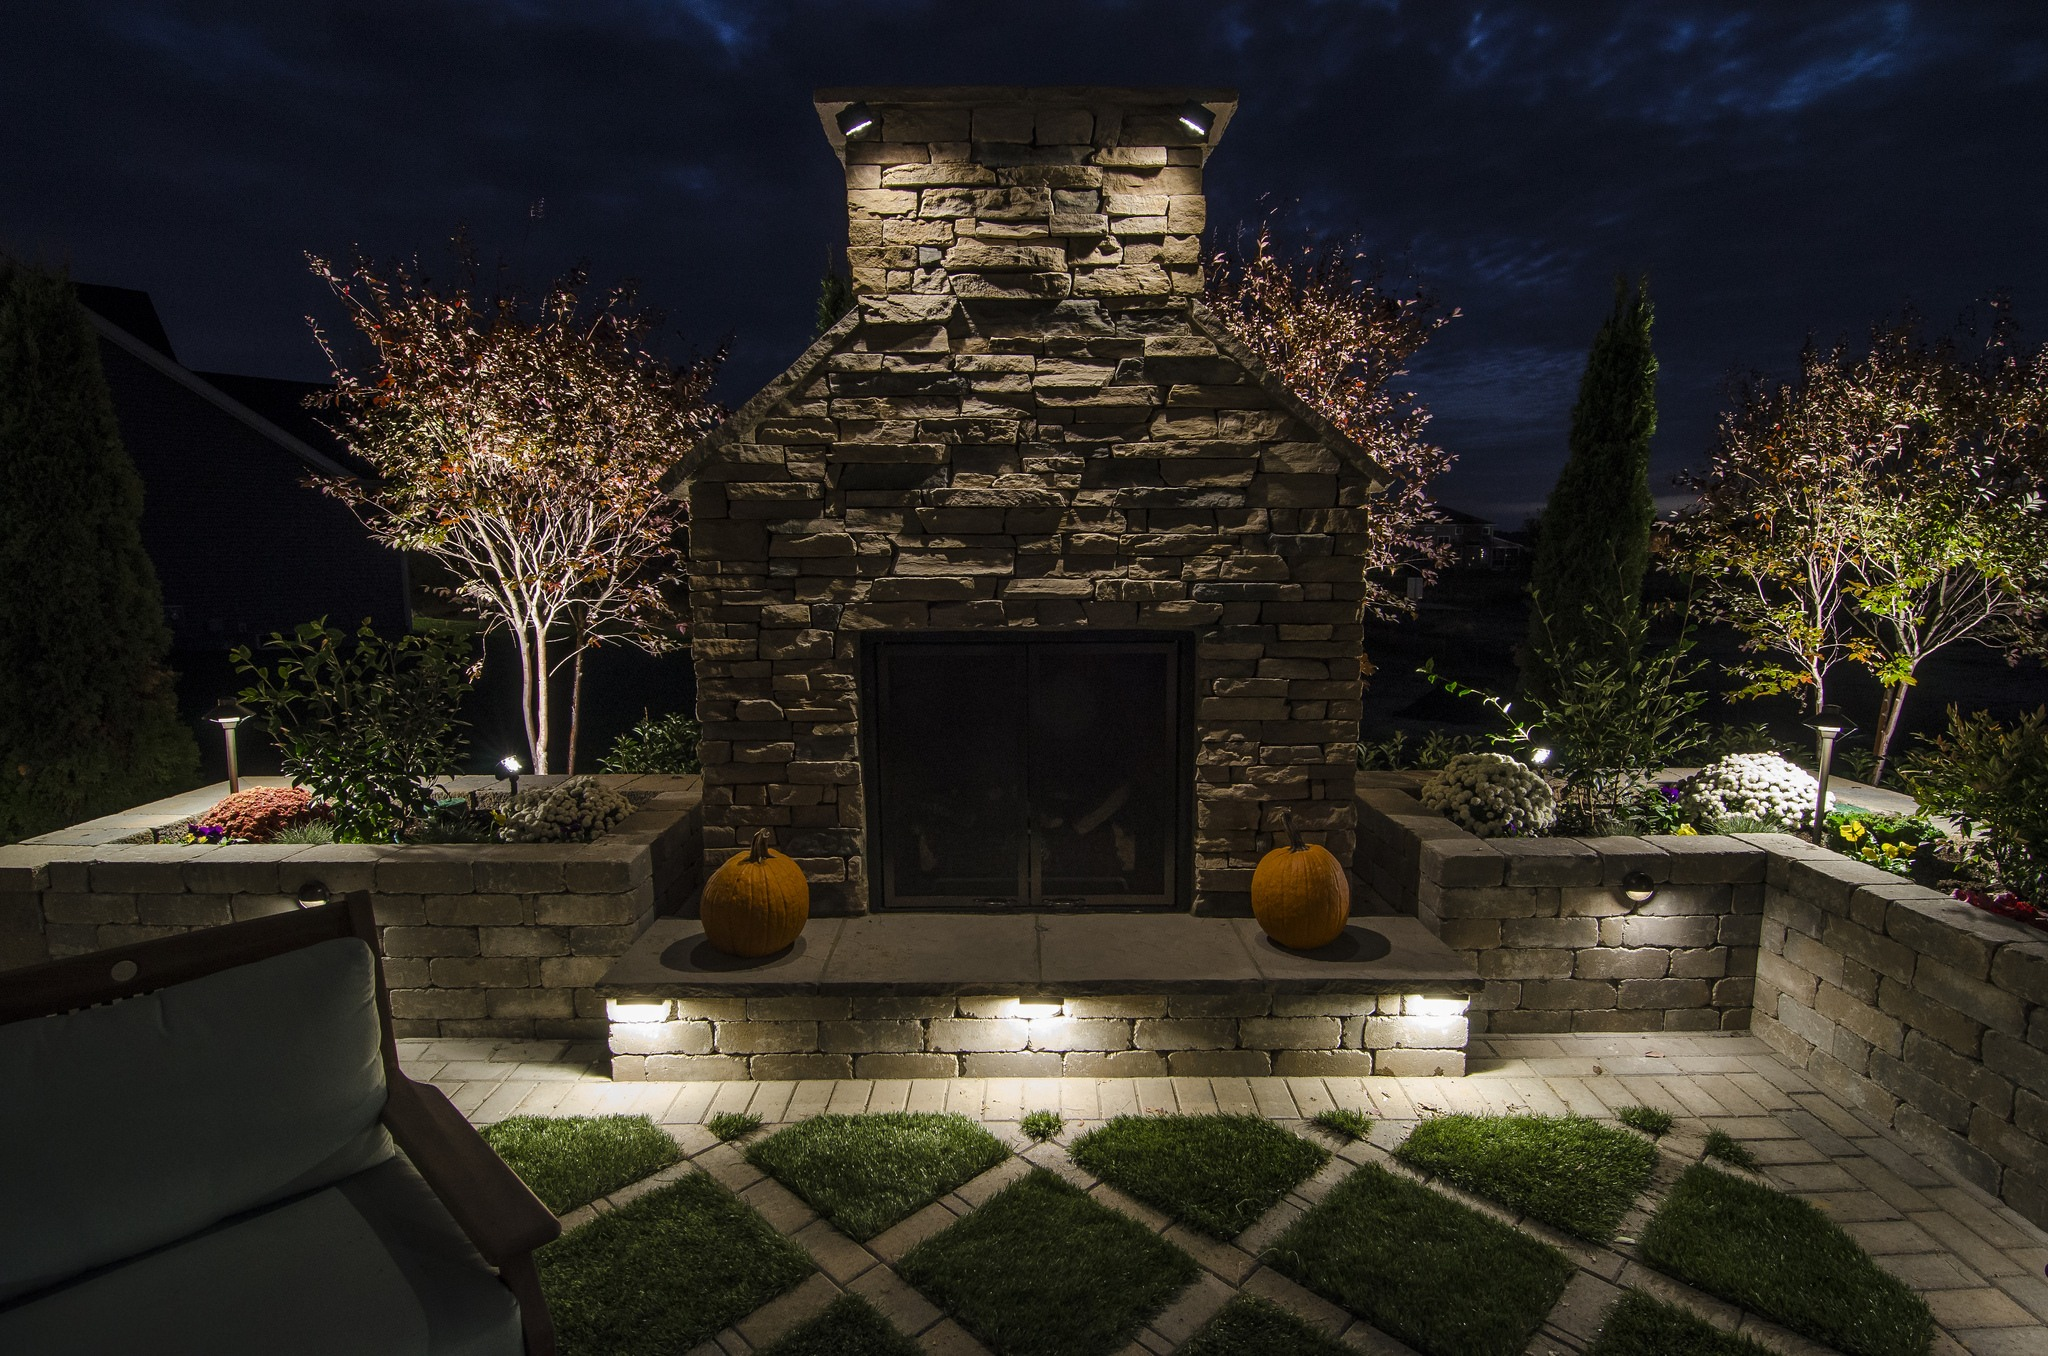 Outdoor Landscape Lighting Professional : Your curb appeal with landscape lighting tips install it direct